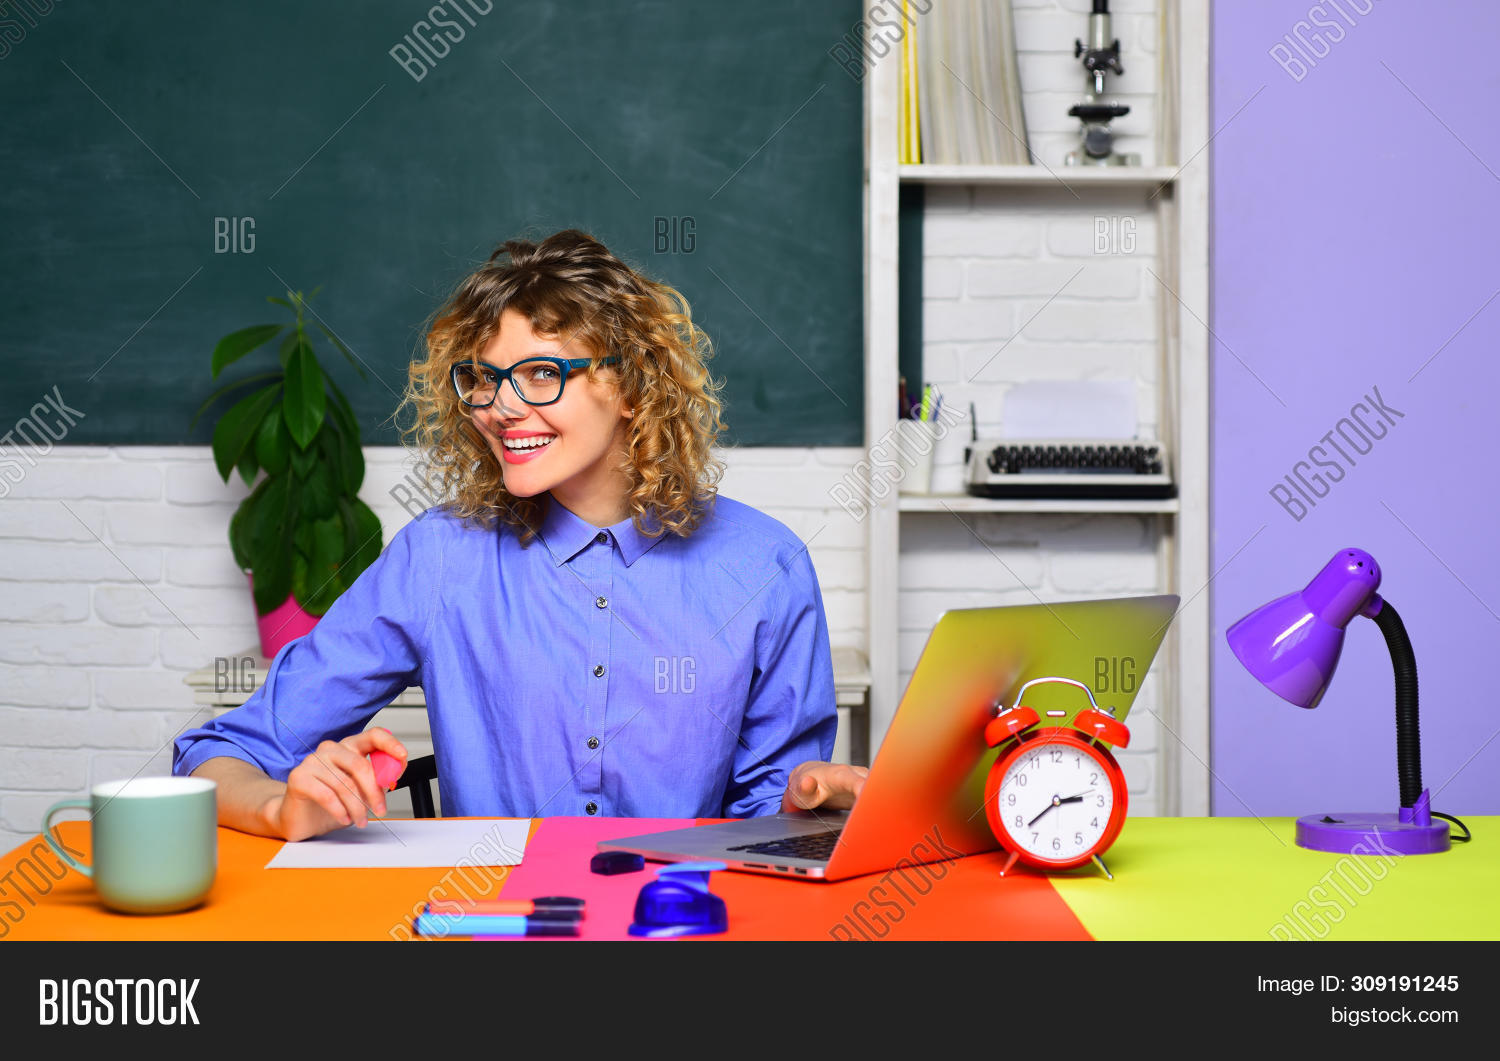 School Student. Funny Female Teacher In Classroom. Student In College. World Teachers Day. Young Fem